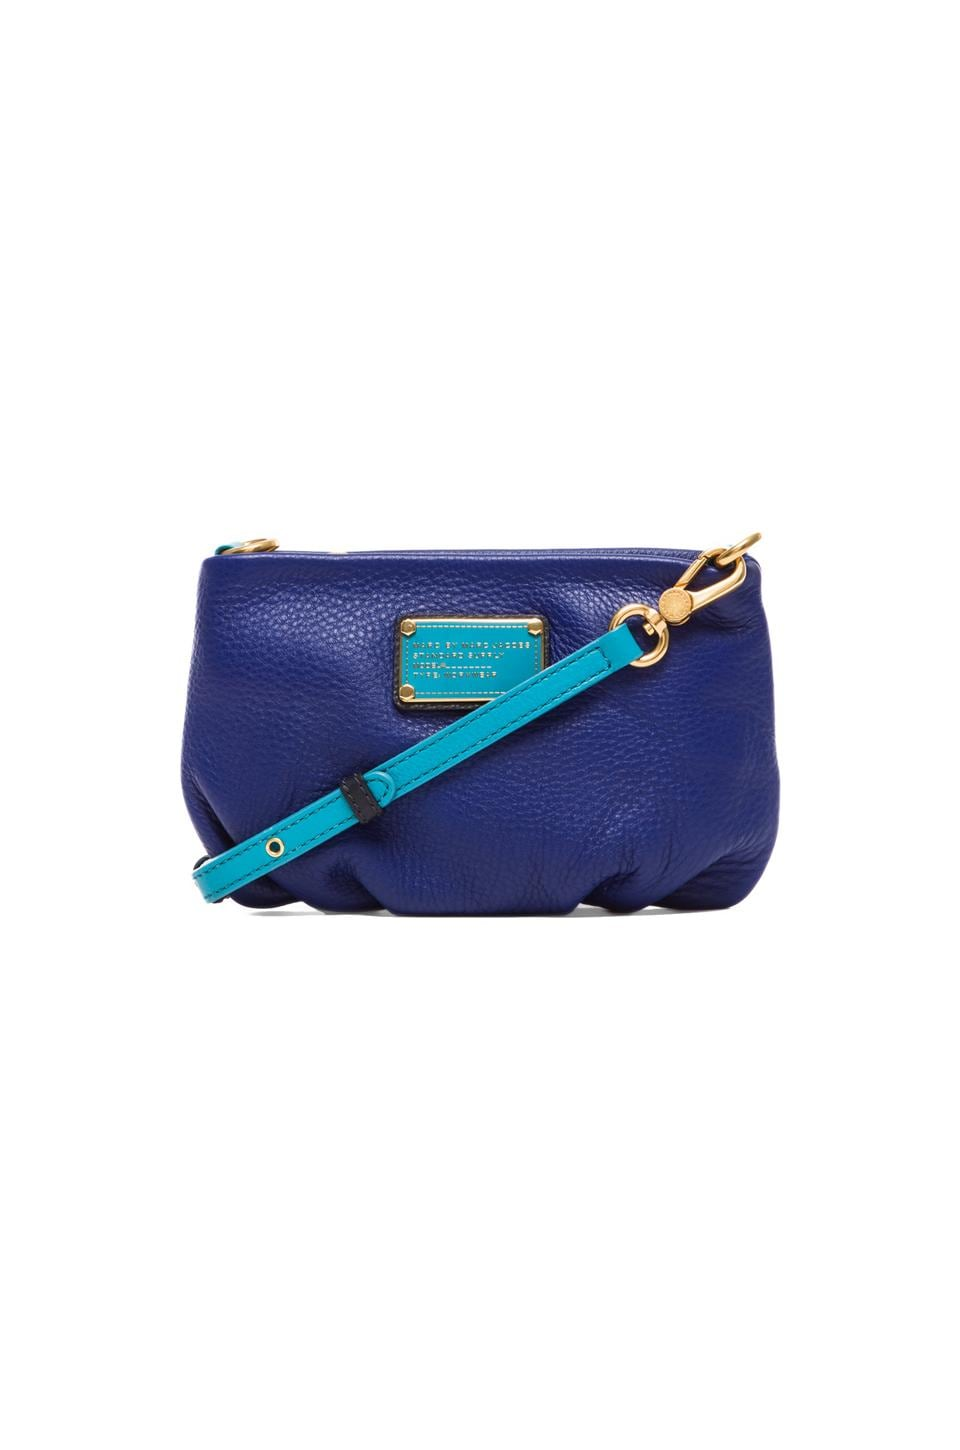 Marc by Marc Jacobs Classic Q Colorblocked Percy in Bright Royal Multi